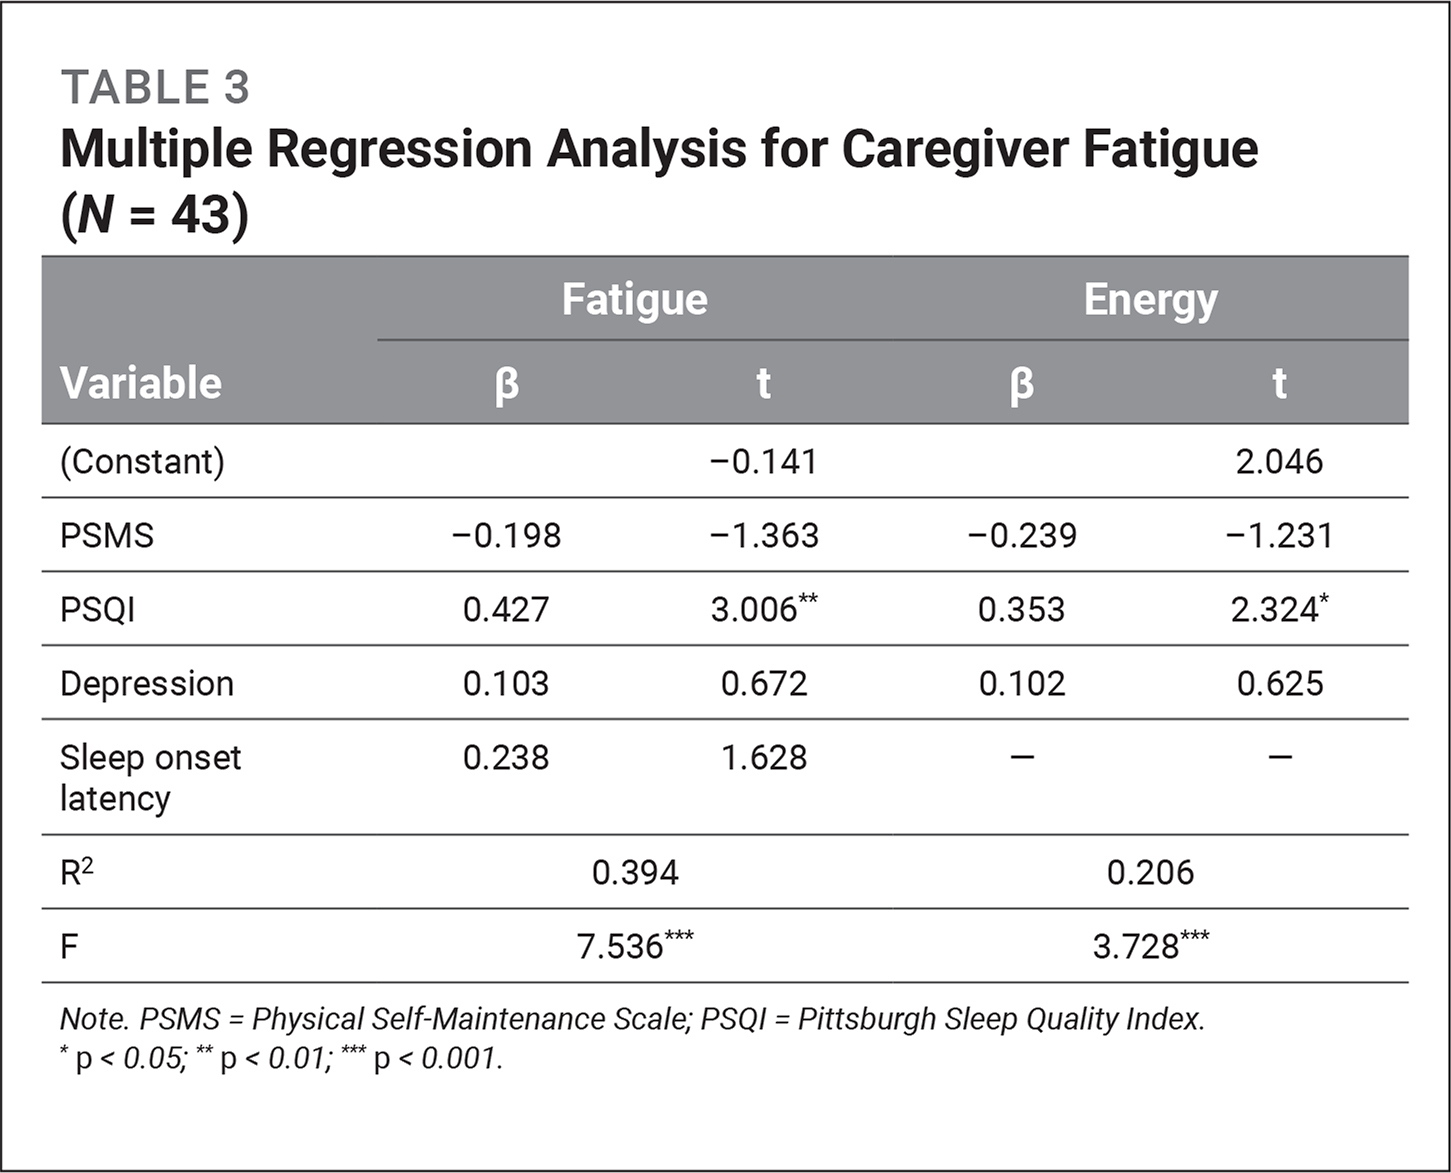 Multiple Regression Analysis for Caregiver Fatigue (N = 43)